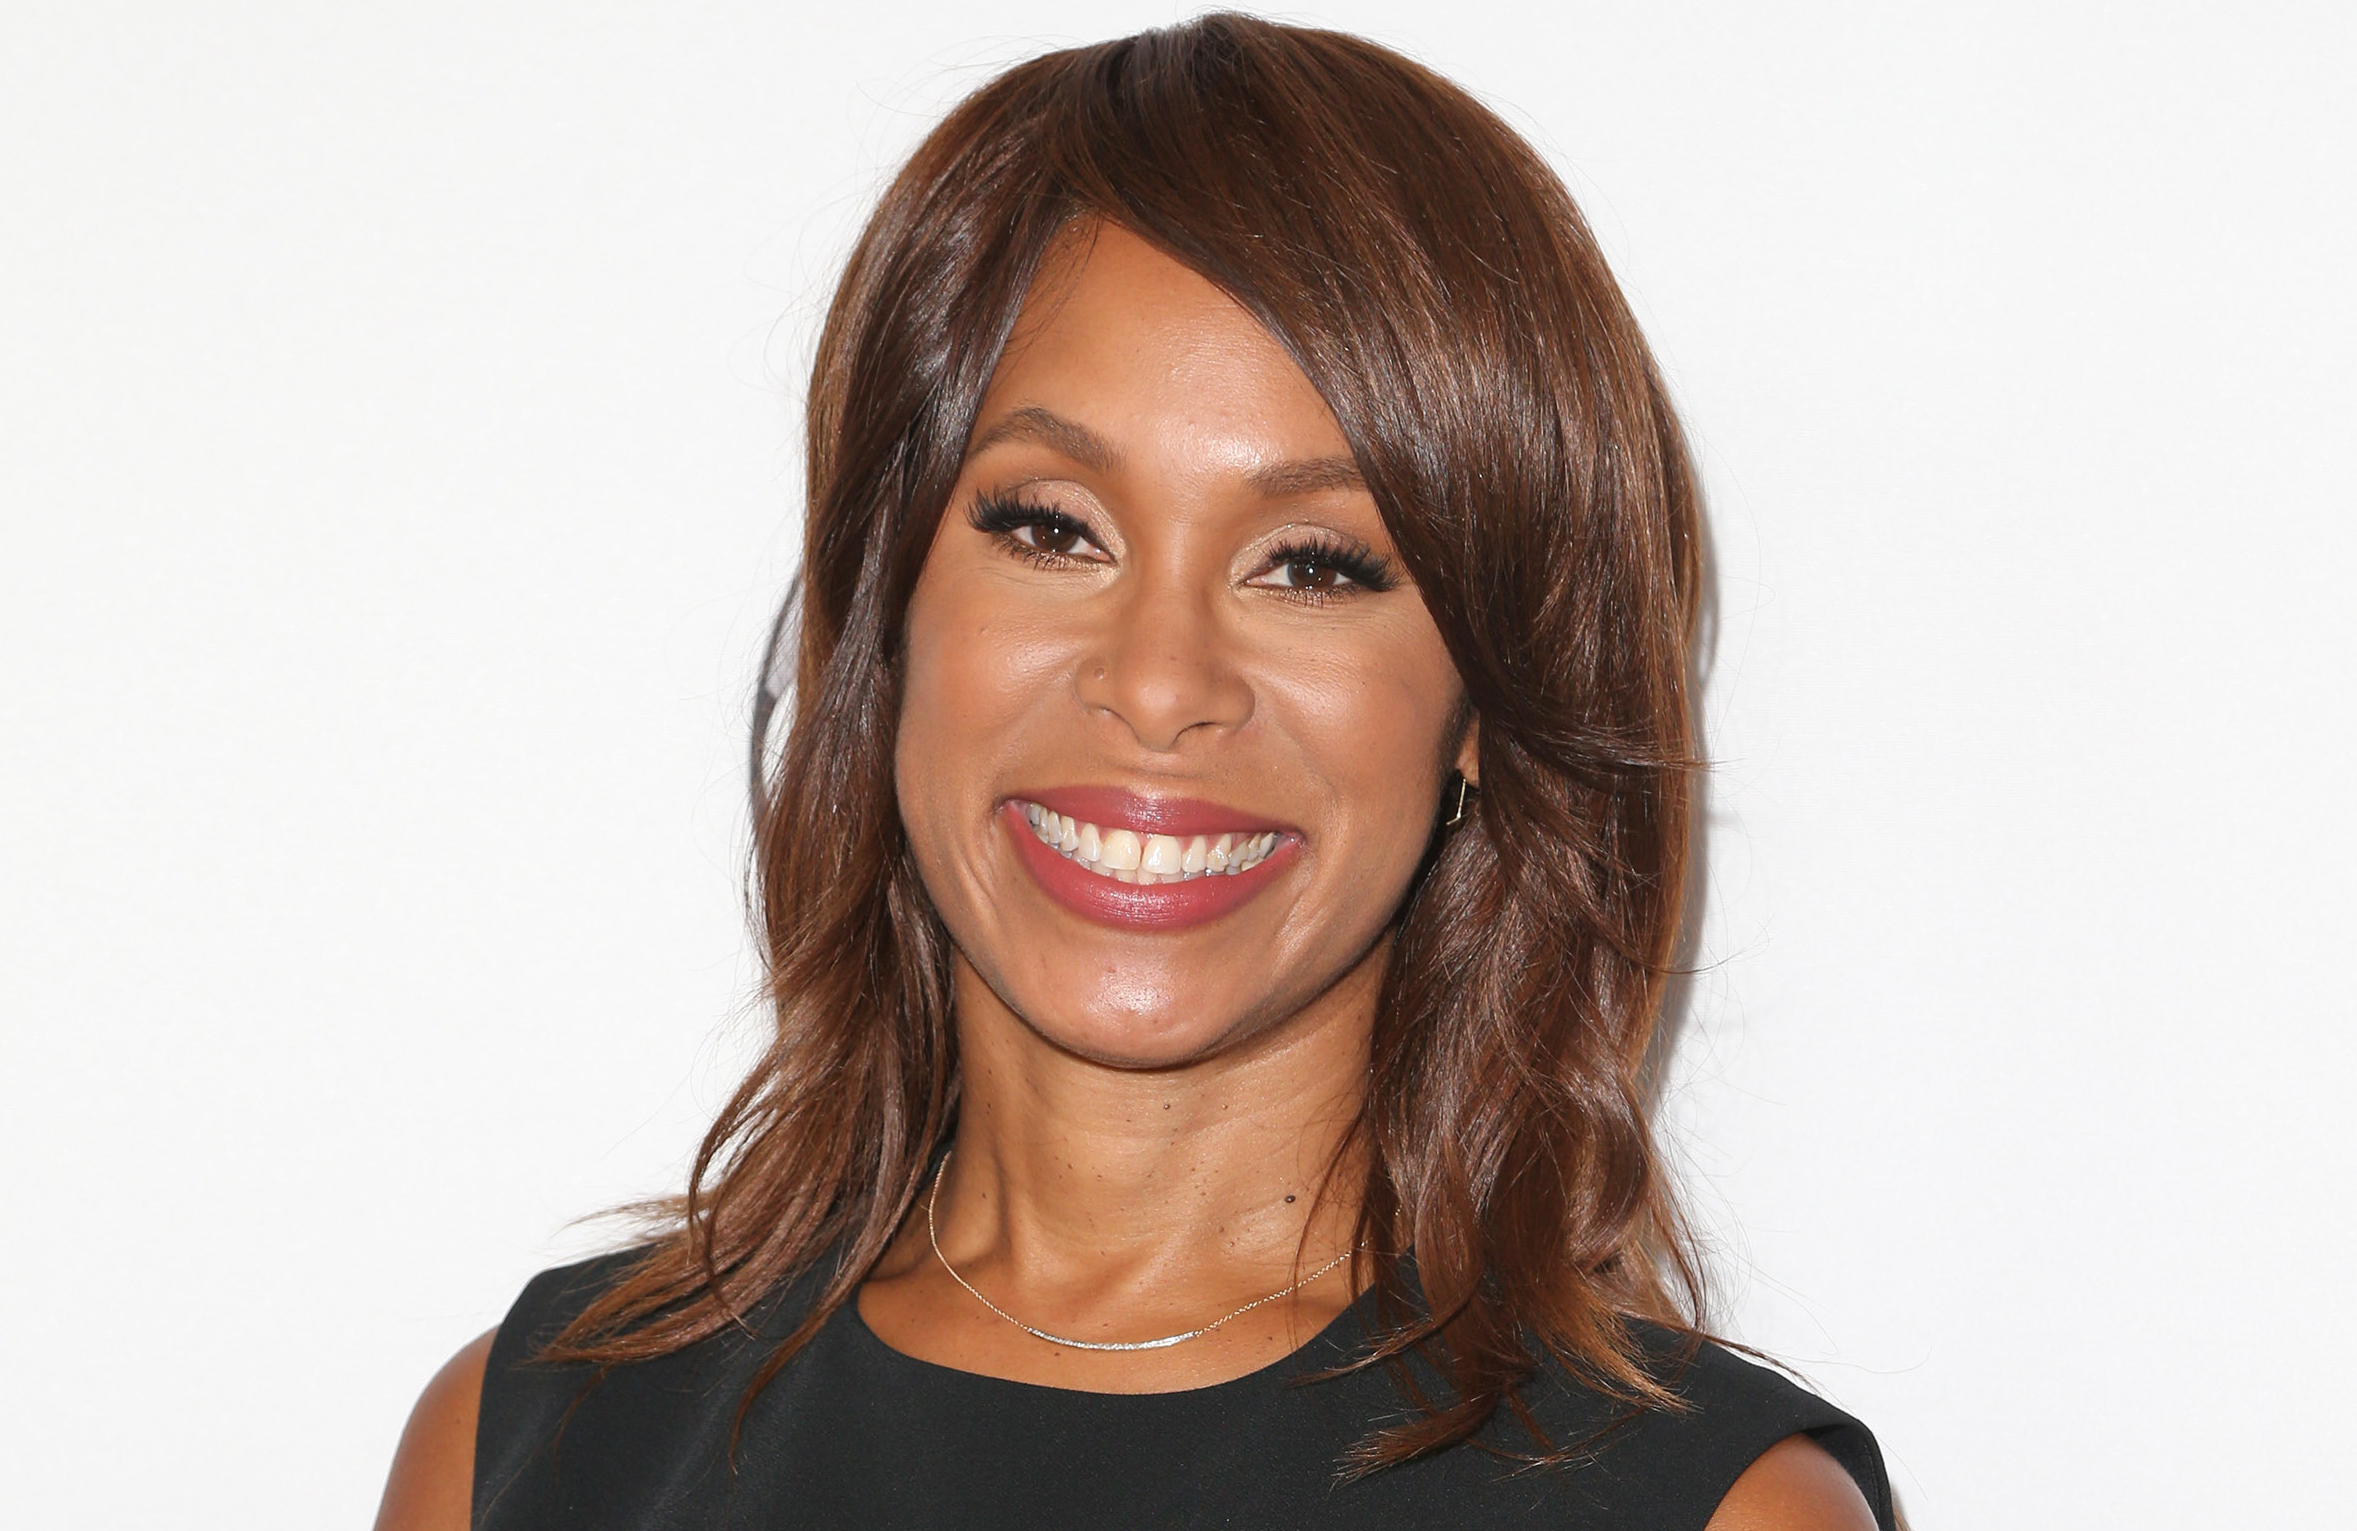 08/04/2016 - Channing Dungey - 2016 Summer TCA Press Tour - Disney/ABC Television Group - Arrivals - The Beverly Hilton Hotel - Beverly Hills, CA, USA - Keywords: Vertical, Radio, Theatrical Performance, Social Event, Television Show, TV Show, Arrival, Portrait, Photography, Red Carpet Event, Annual Event, Arts Culture and Entertainment, Celebrity, Celebrities, Television Critics Association Awards, Person, People, California Orientation: Portrait Face Count: 1 - False - Photo Credit: PRPhotos.com - Contact (1-866-551-7827) - Portrait Face Count: 1